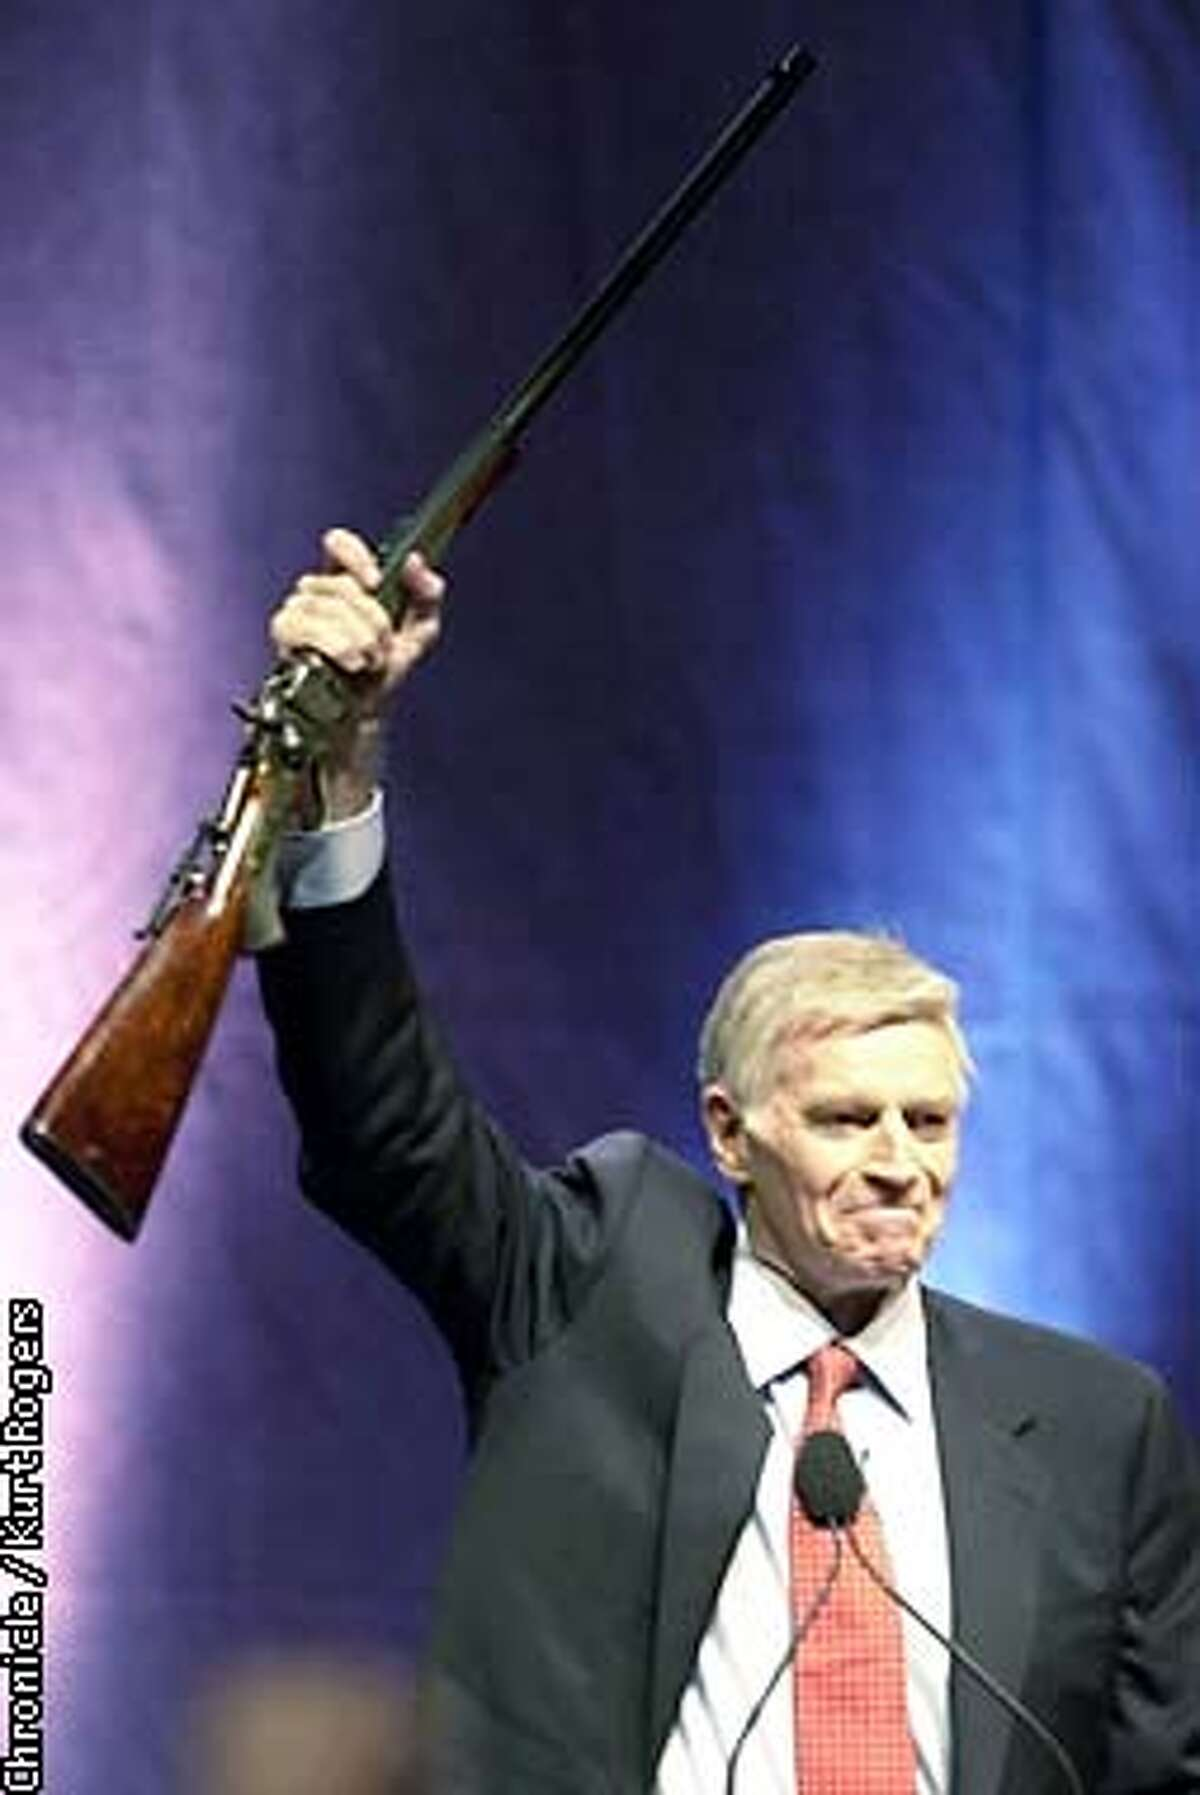 Charlton Heston the president of the NRA addresses the members that were attending and held up a rifle he was given. 131st Annual National Rifle Association Meeting at the Reno Convention Center .Photo By Kurt Rogers